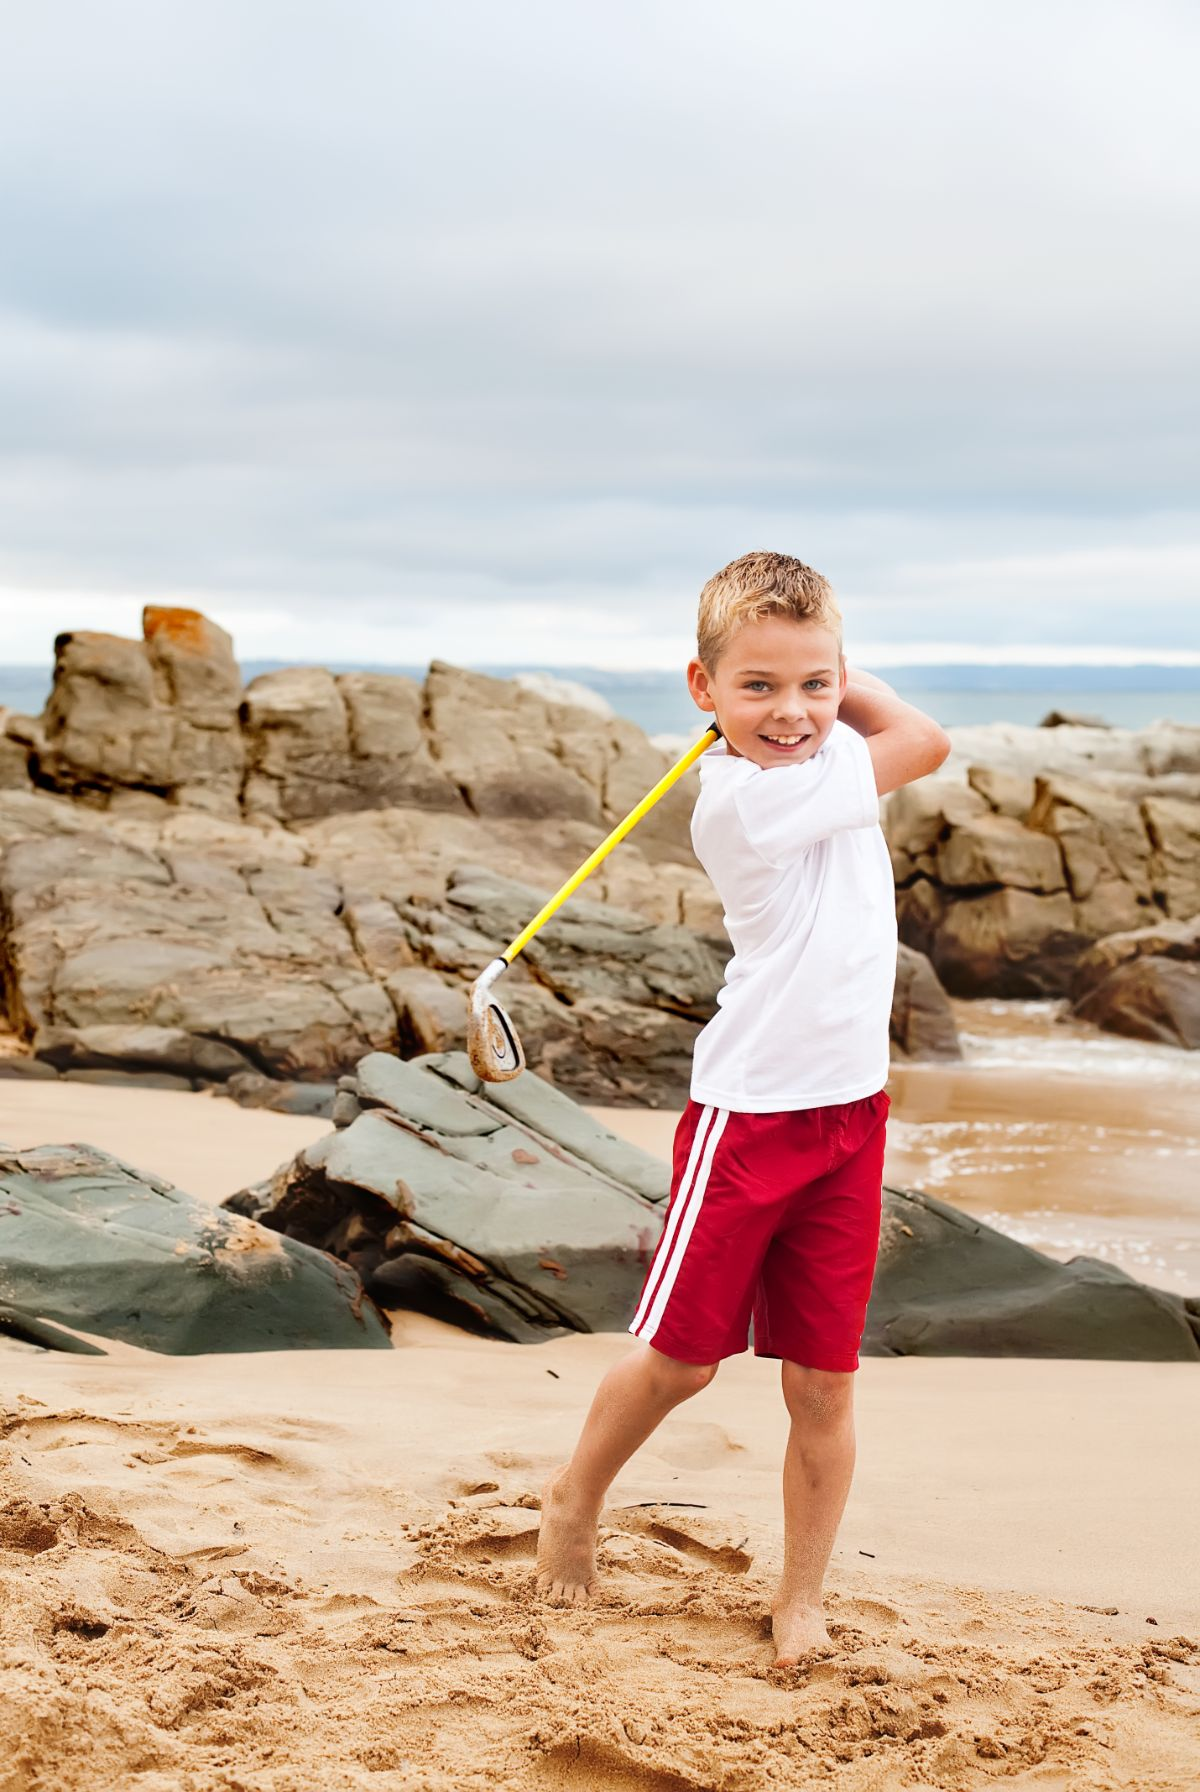 a boy in white tshirt and red shorts swings a yellow golf club behind him, standing in front of rocks